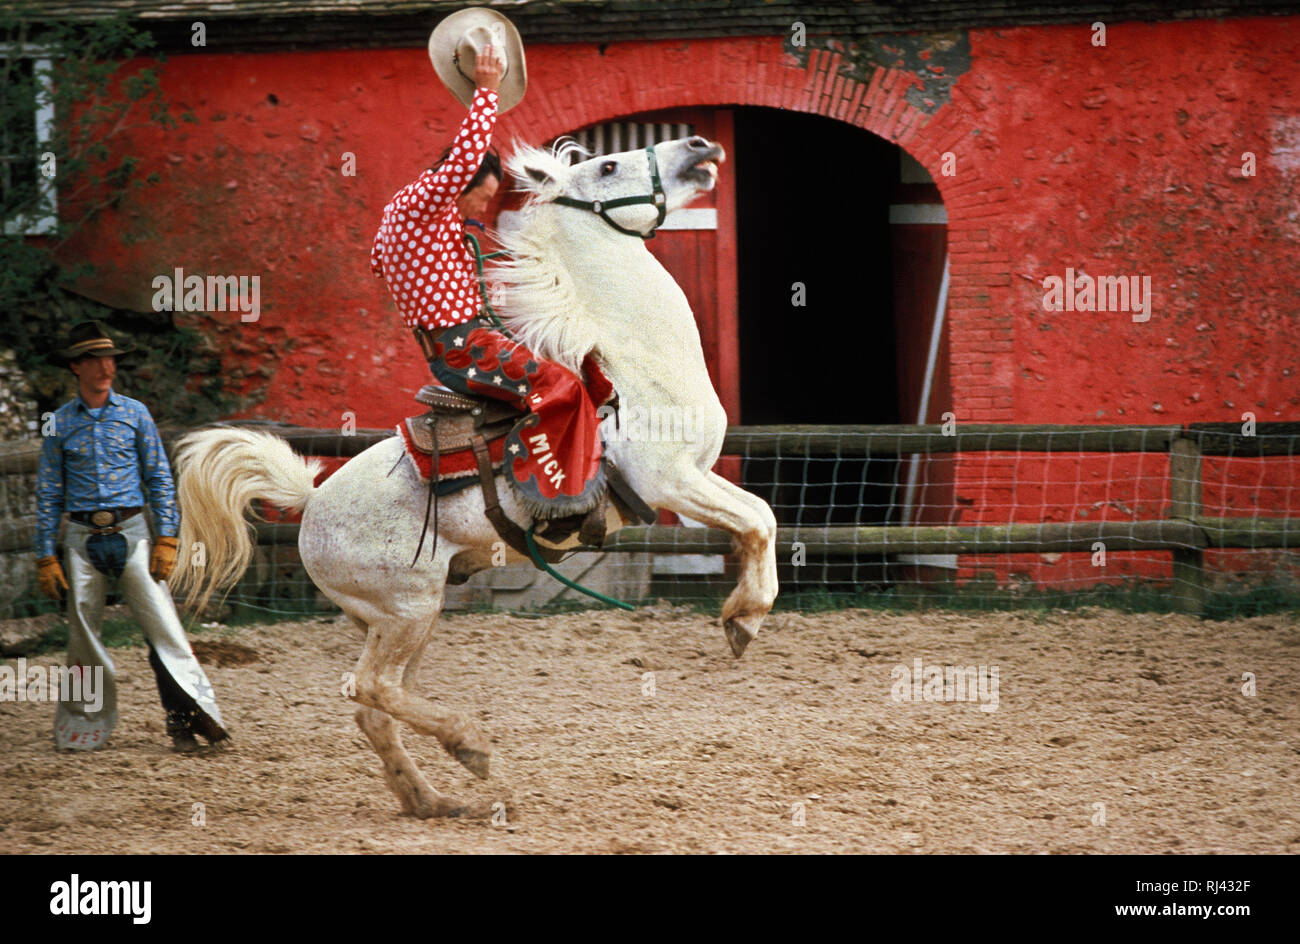 Rodeo, Cowboy, Reiter, - Stock Image